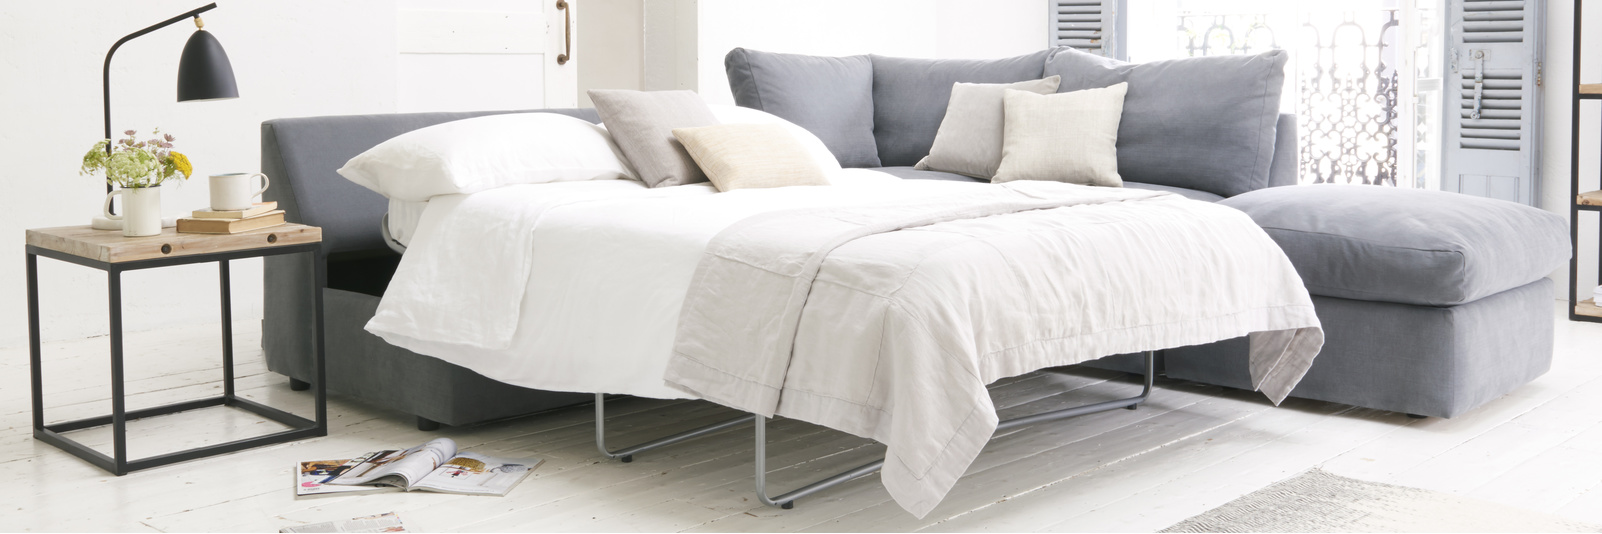 British made luxury deep and comfy sofa beds